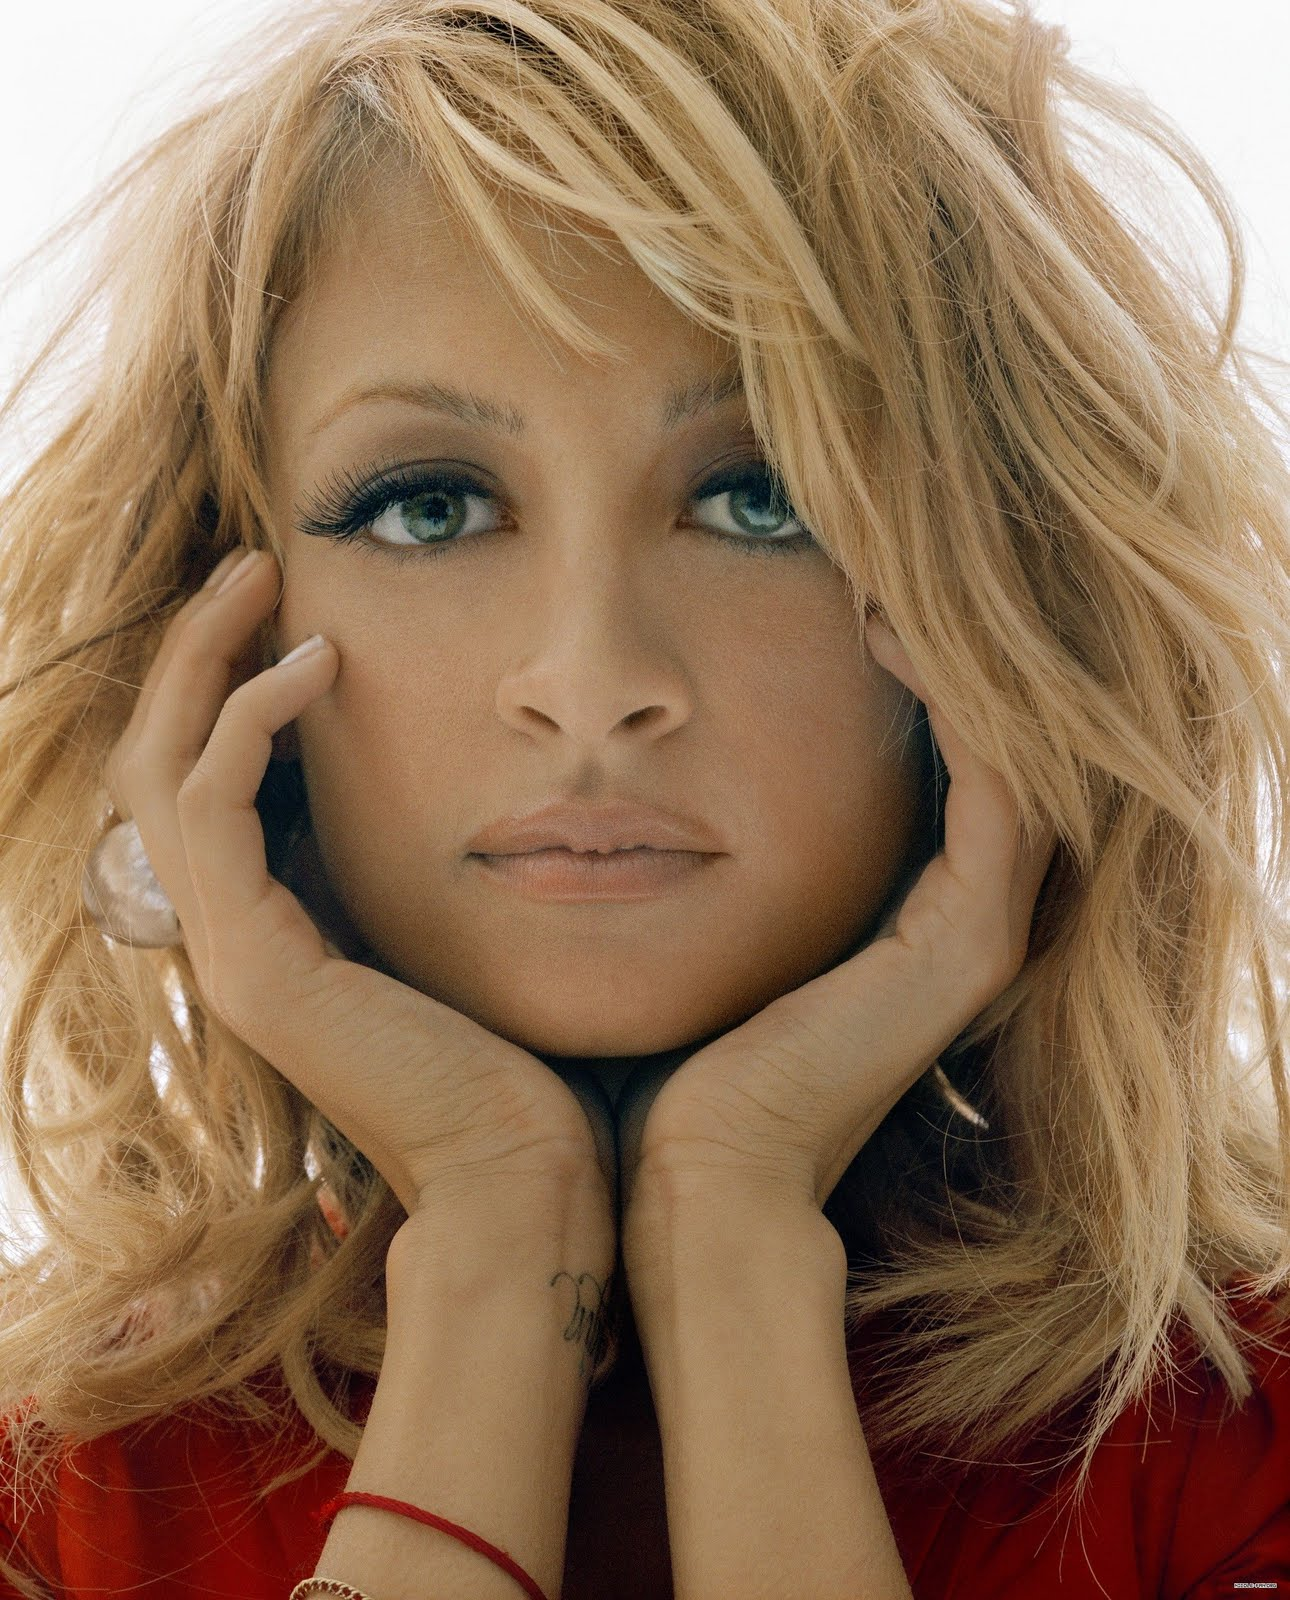 Nicole Richie - Images Colection